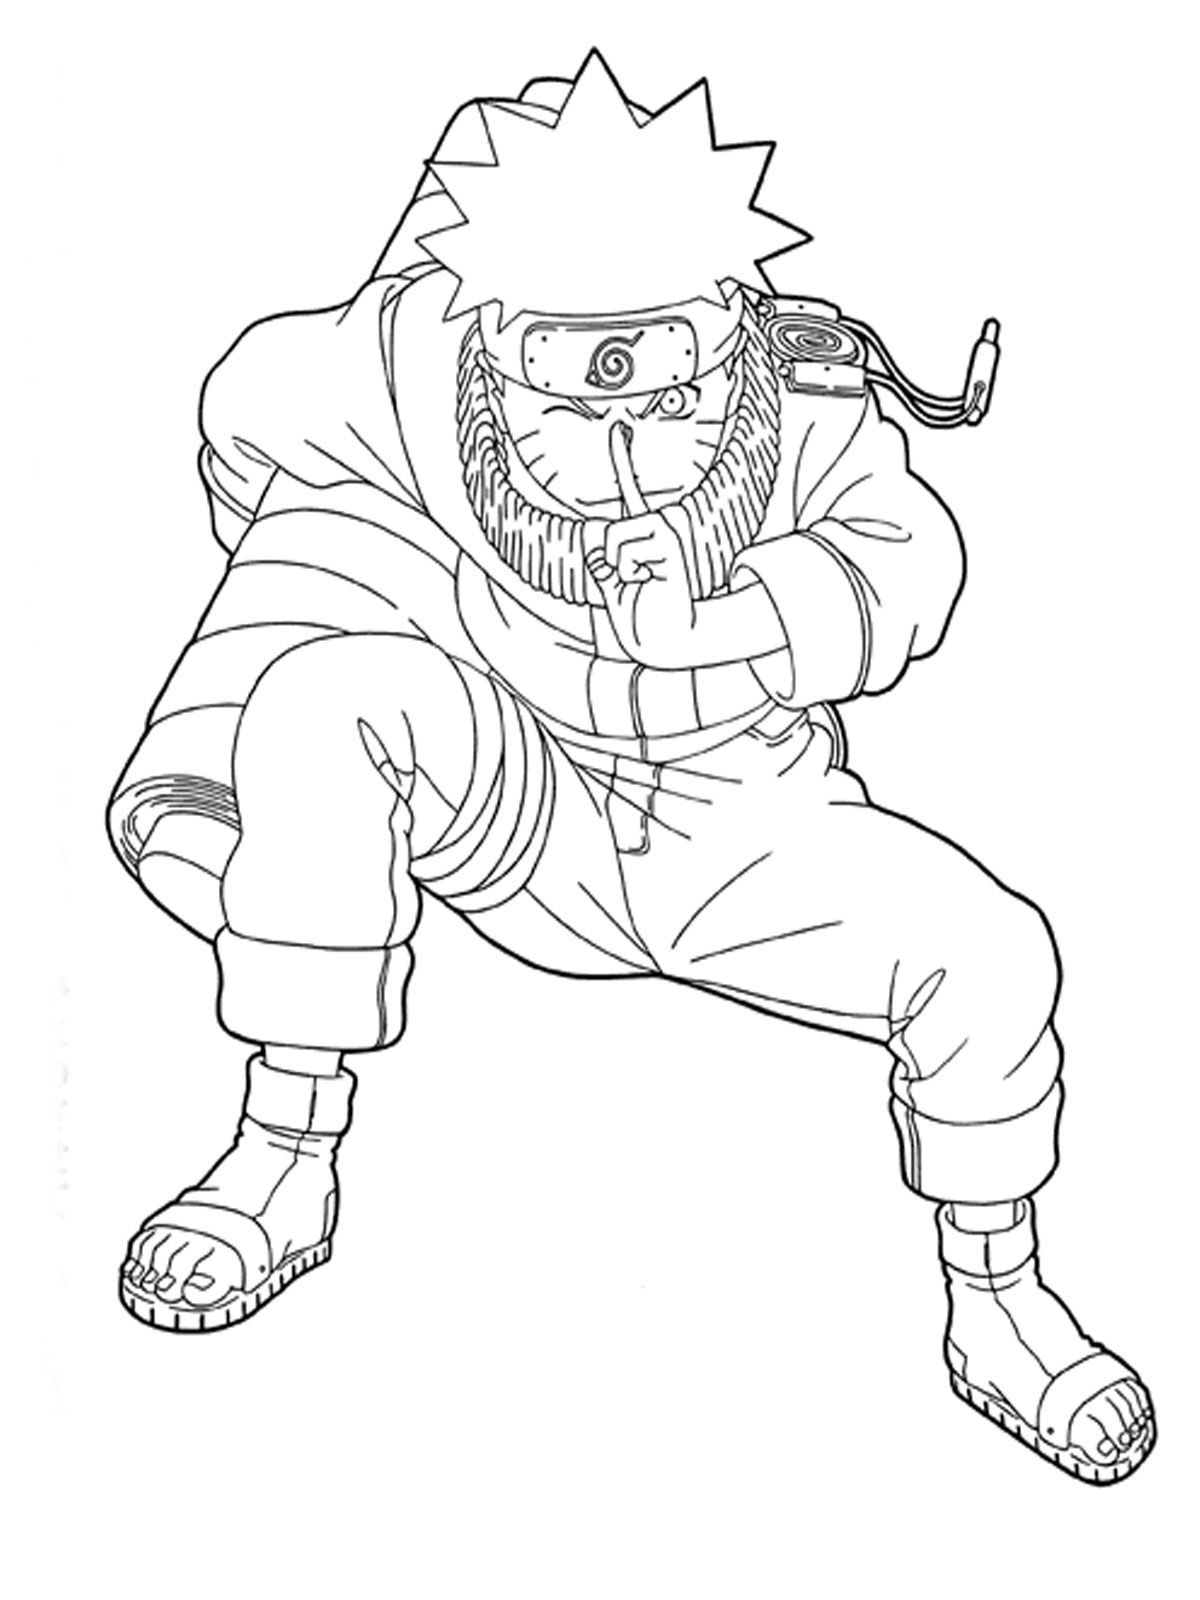 Free Printable Naruto Coloring Pages For Kids Coloring Home